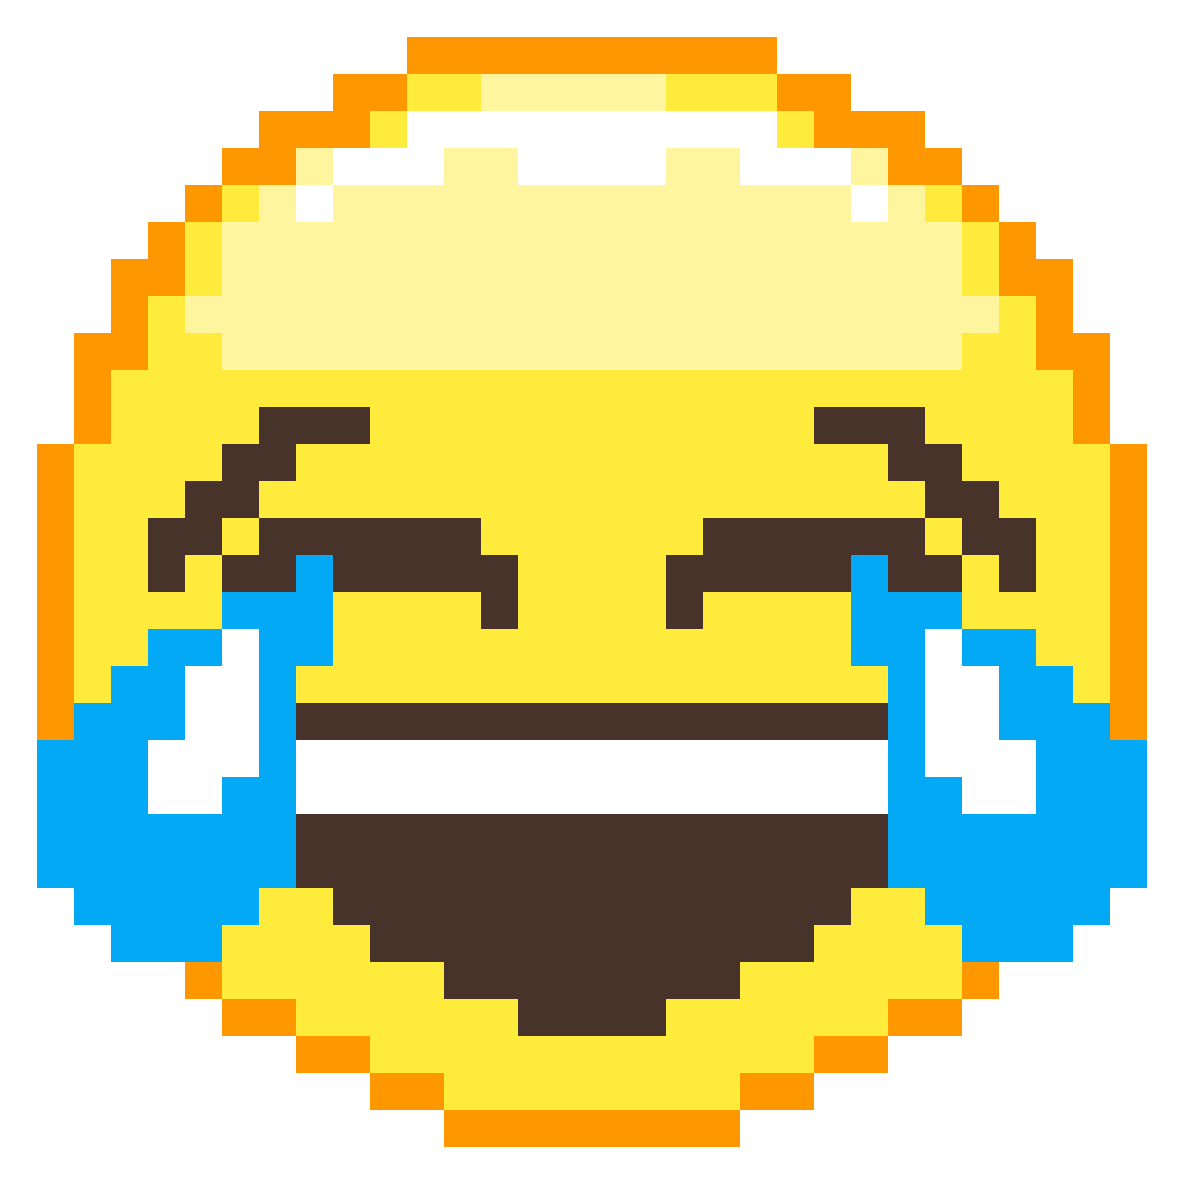 Emoticon Art Symmetry Of Face Tears Joy PNG Image